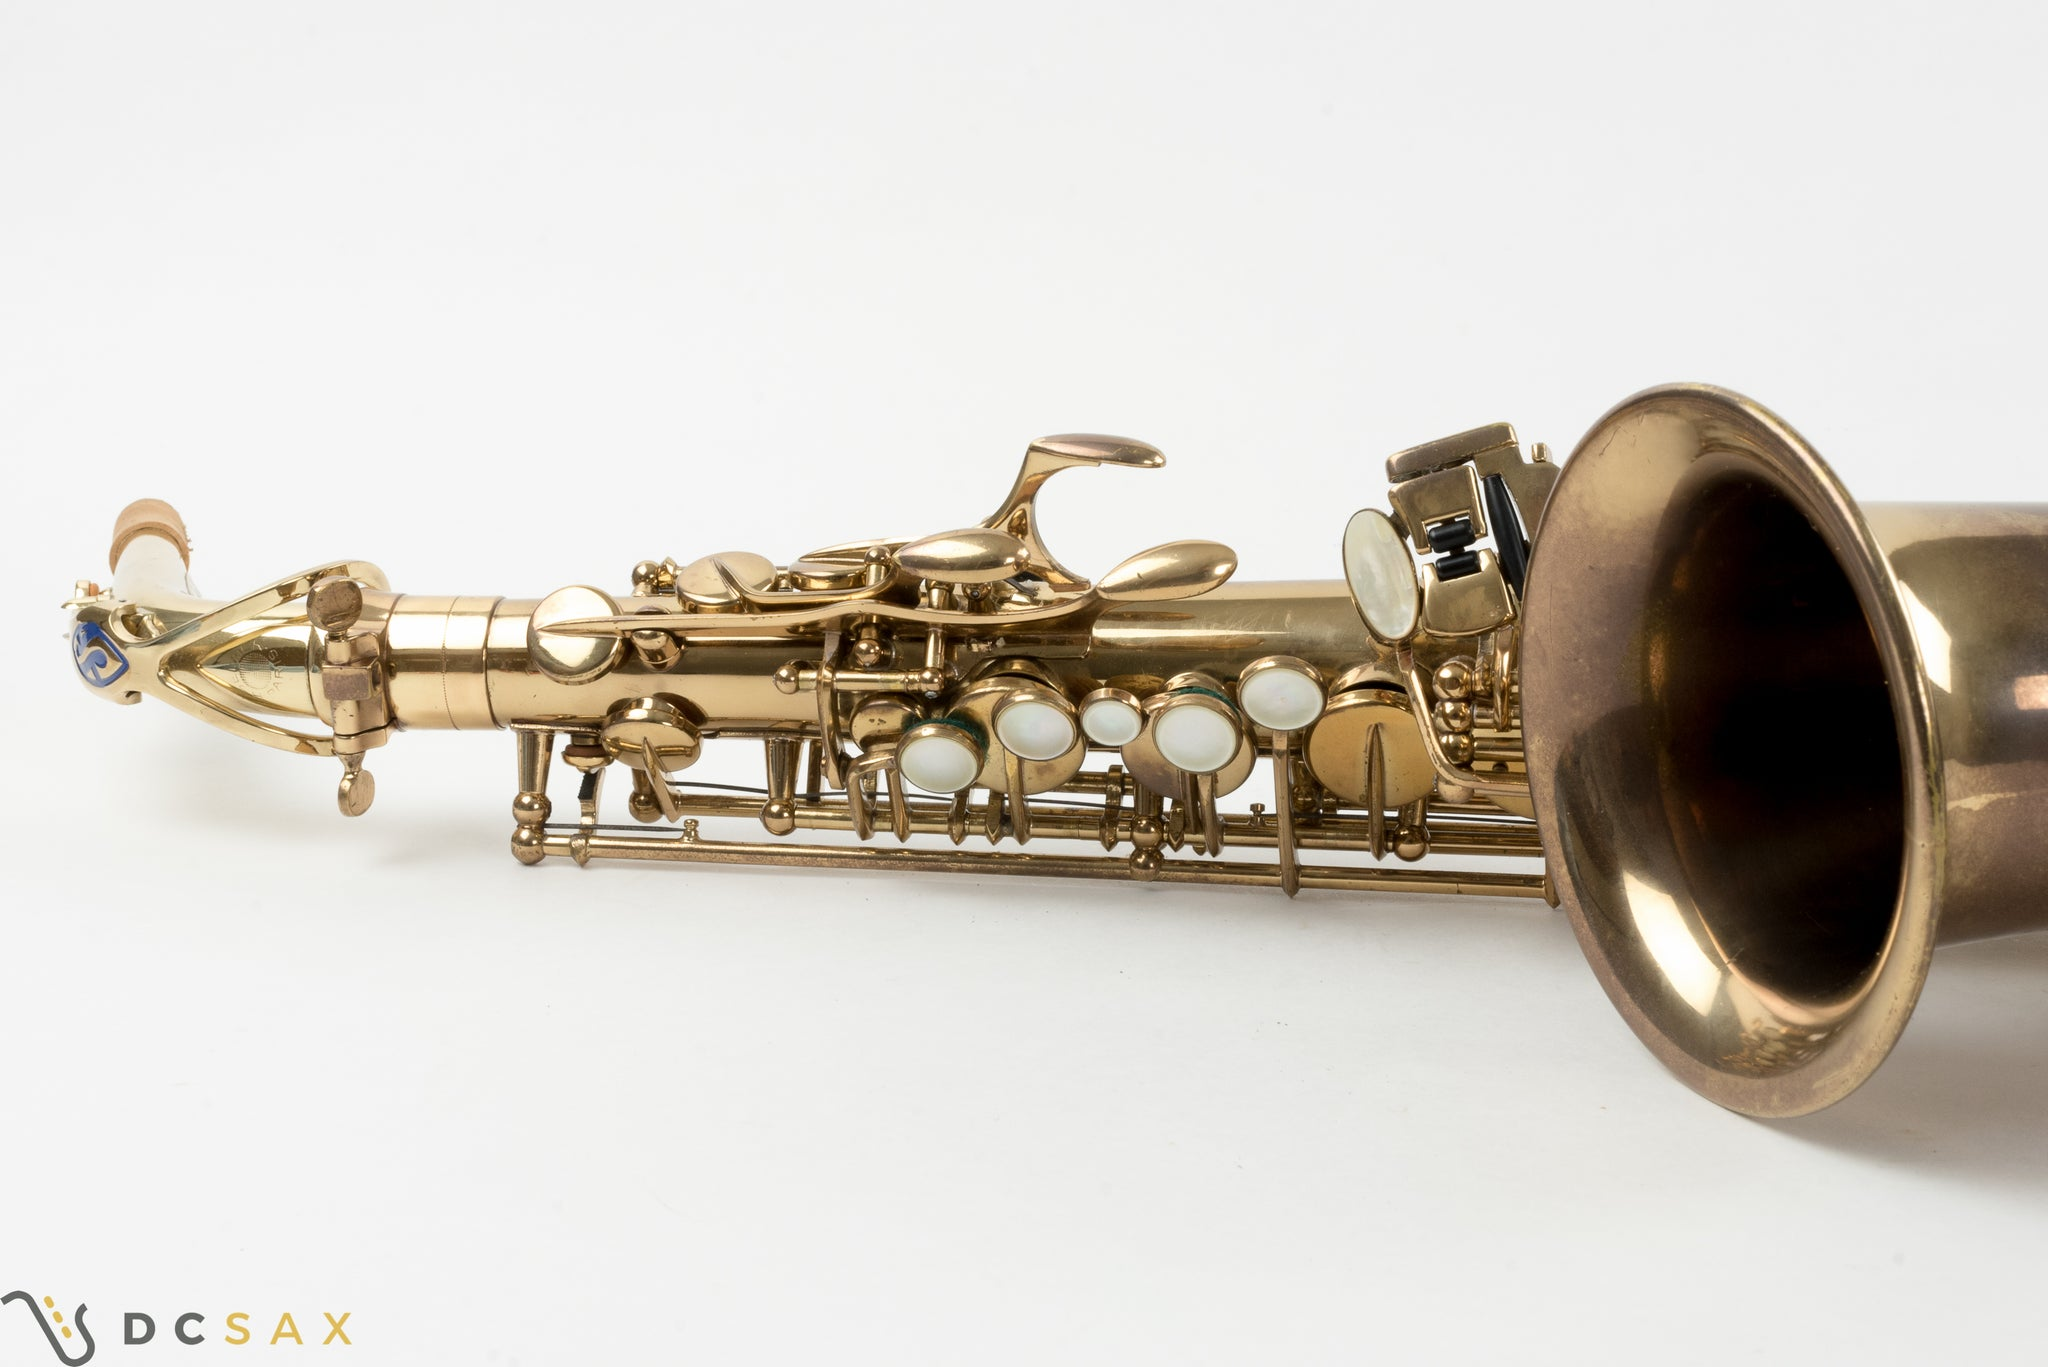 176,xxx Selmer Mark VI Alto Saxophone, 99% Original Lacquer, Fresh Overhaul, Video